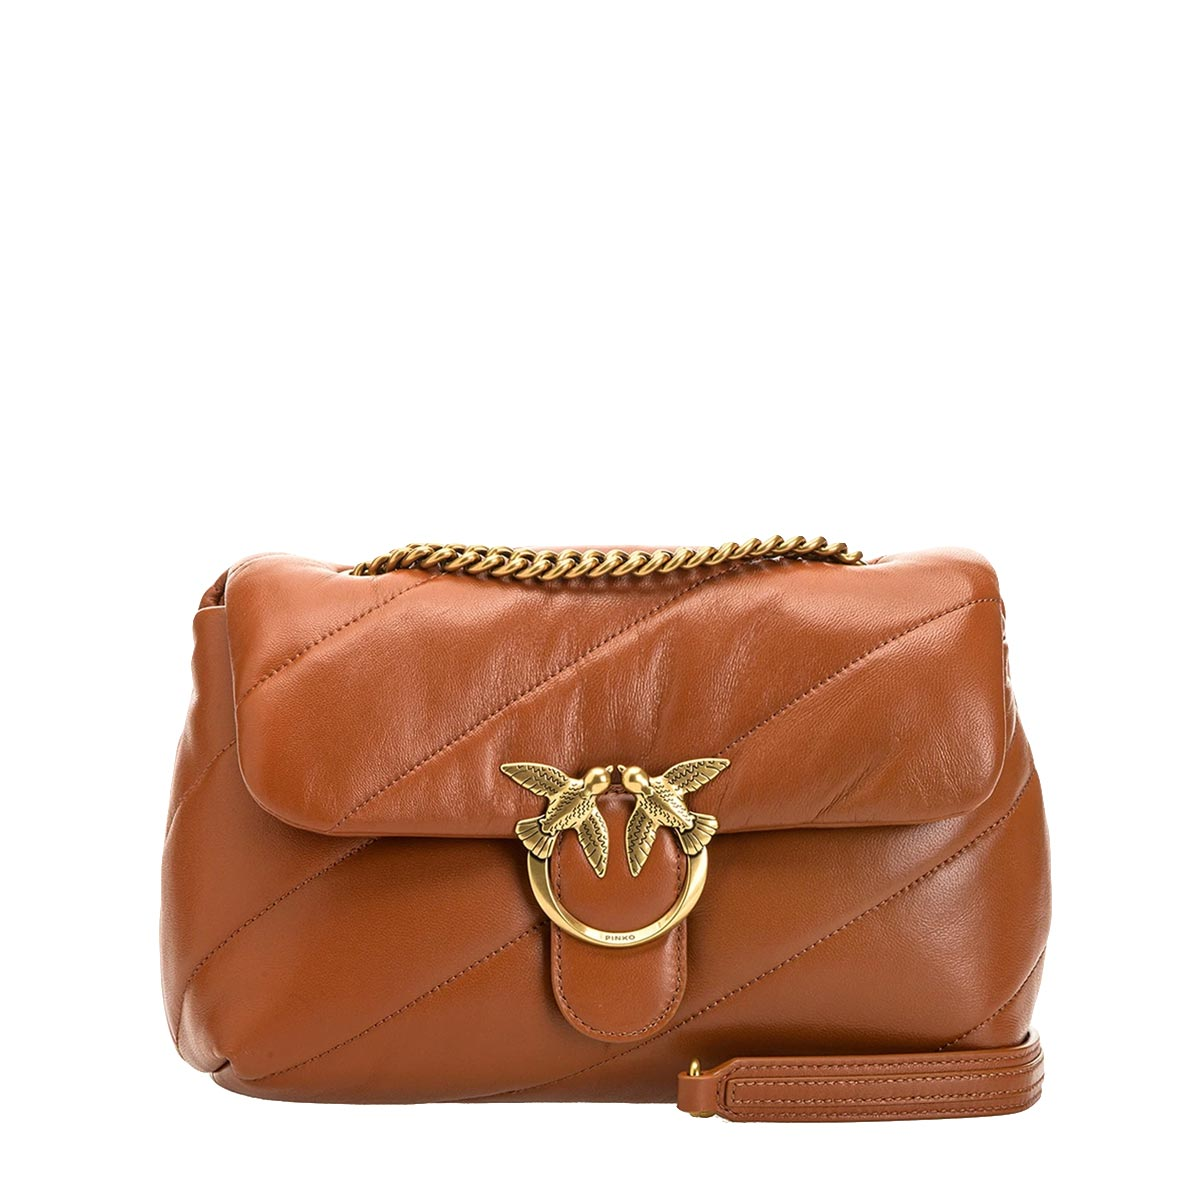 Pinko Leathers CLASSIC LOVE BAG PUFF MAXI QUILT